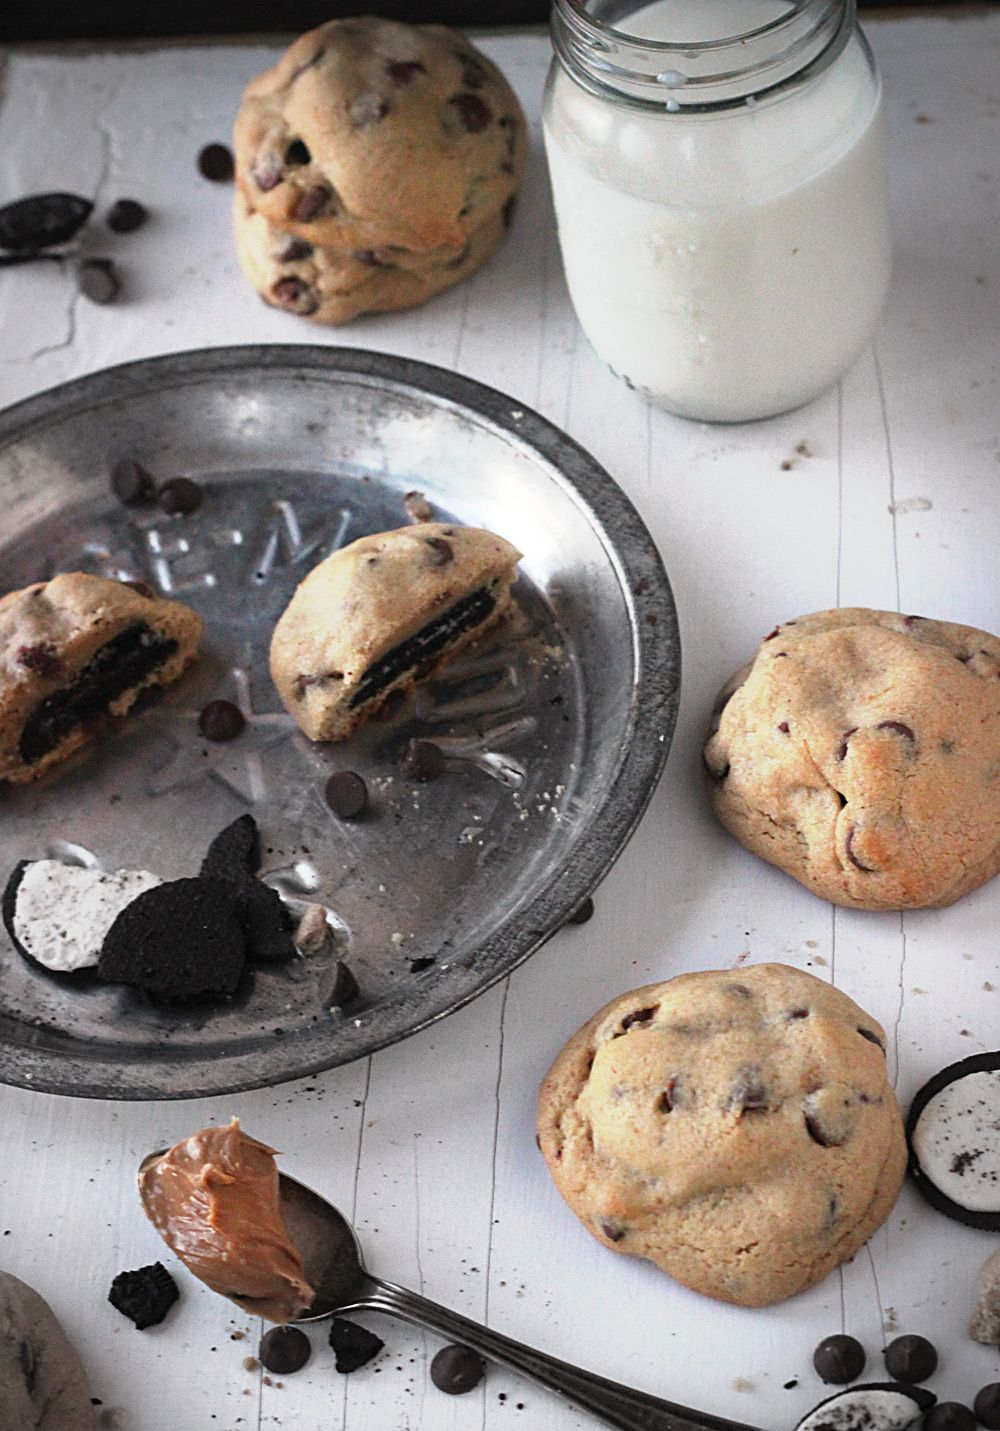 Oreo-Stuffed Peanut Butter Chocolate Chip Cookies